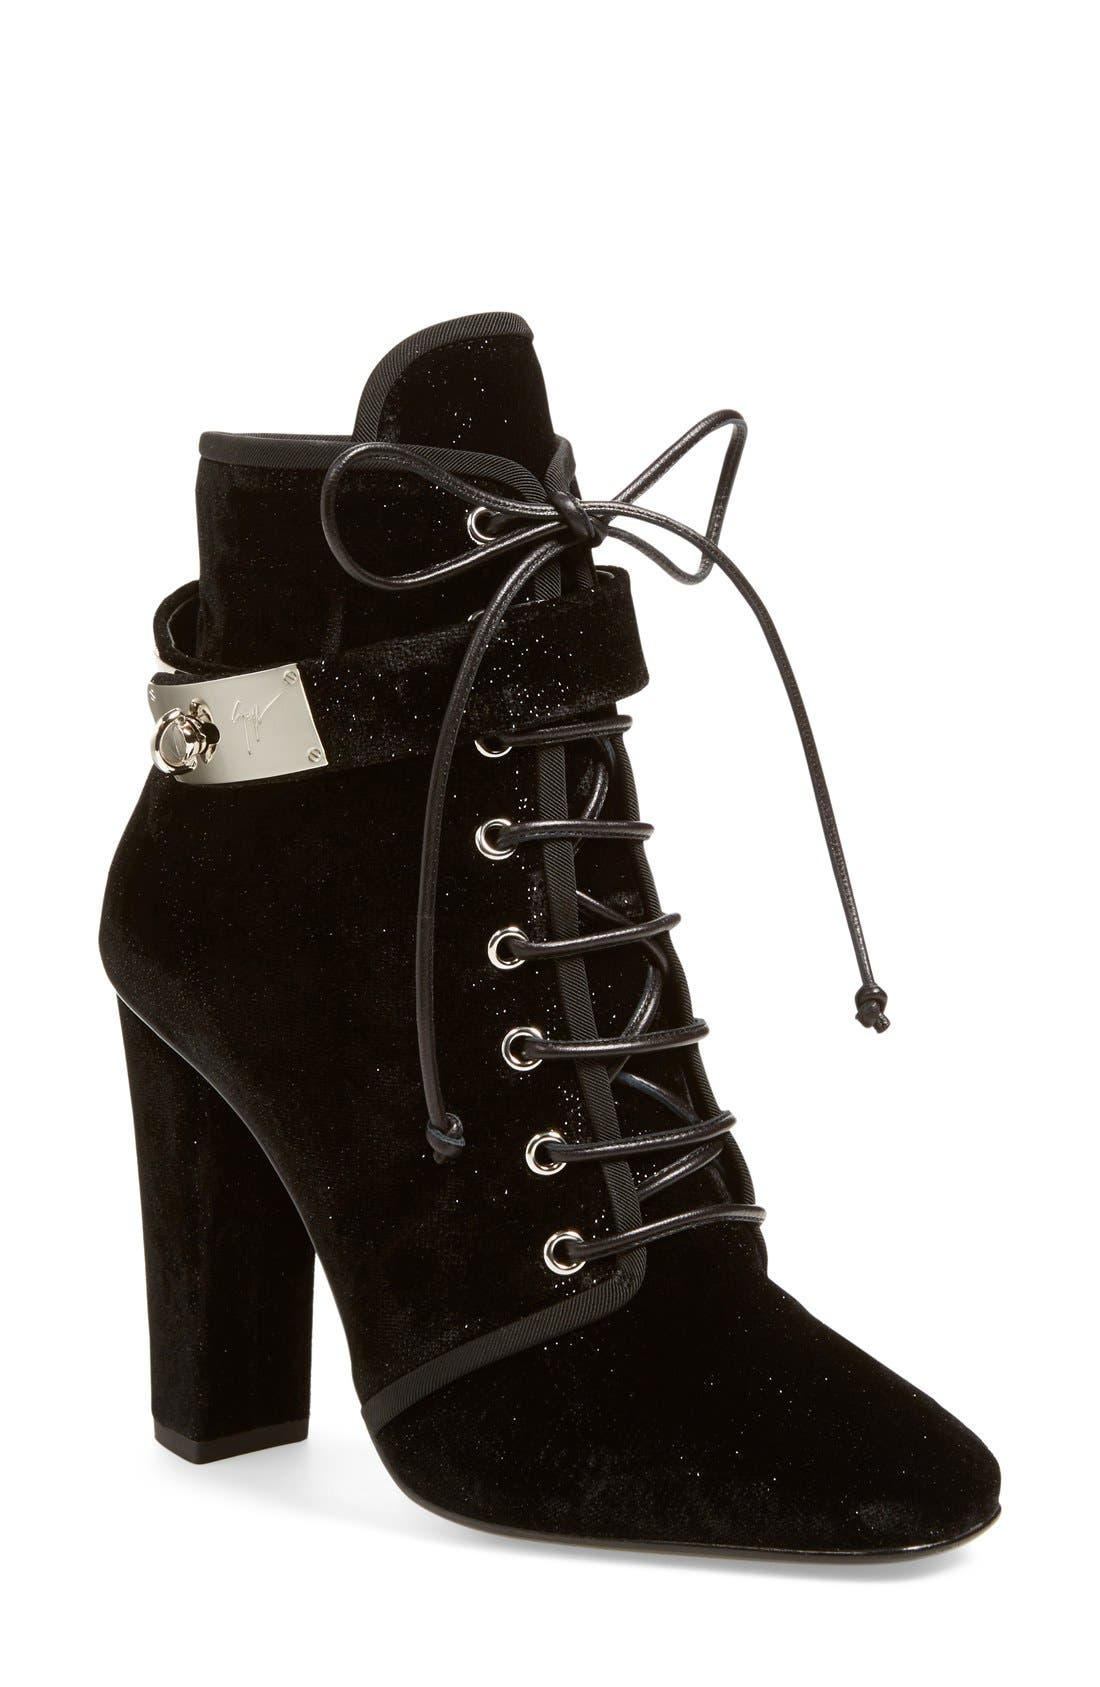 Main Image - Giuseppe Zanotti 'Alabama' Lace-Up Bootie (Women)